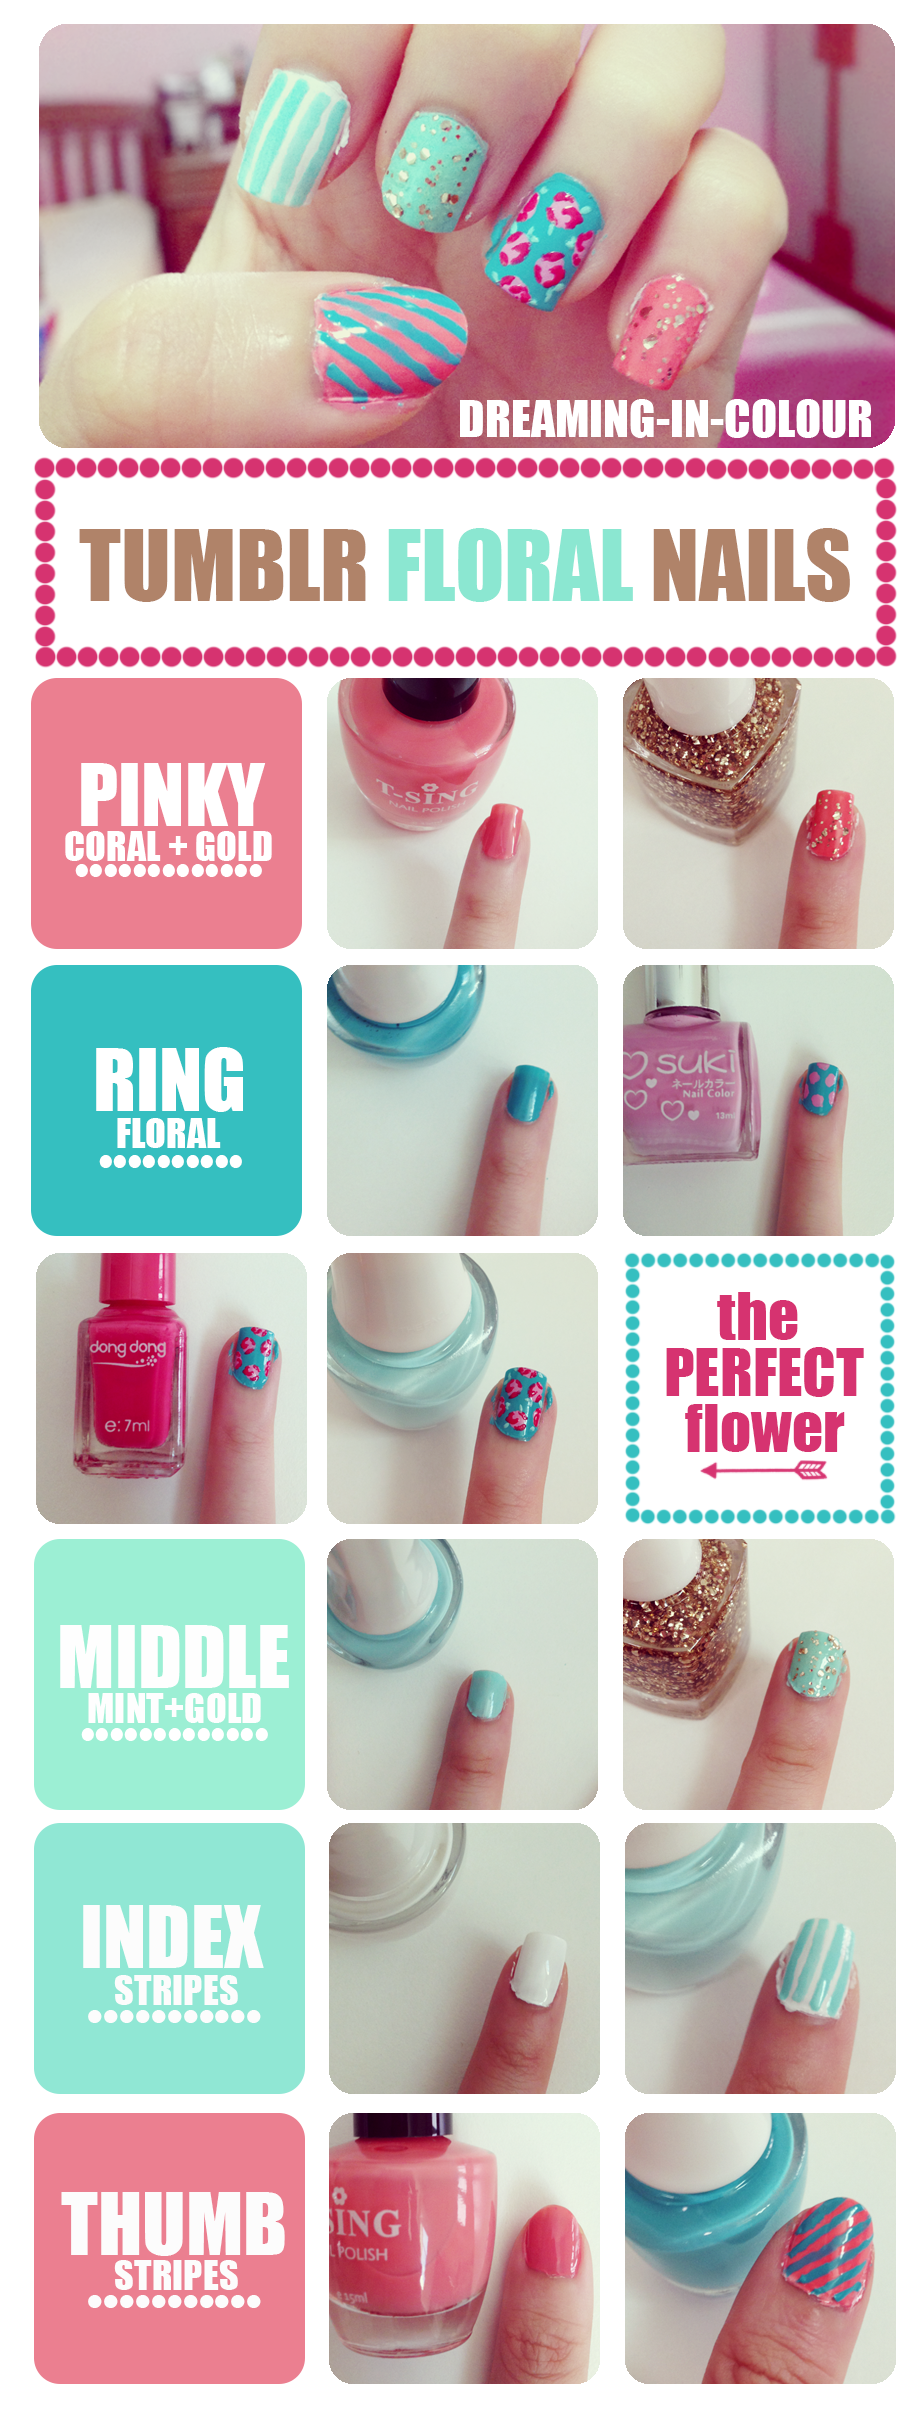 Tumblr Inspired Floral Nails Tutorial Nailsilsils